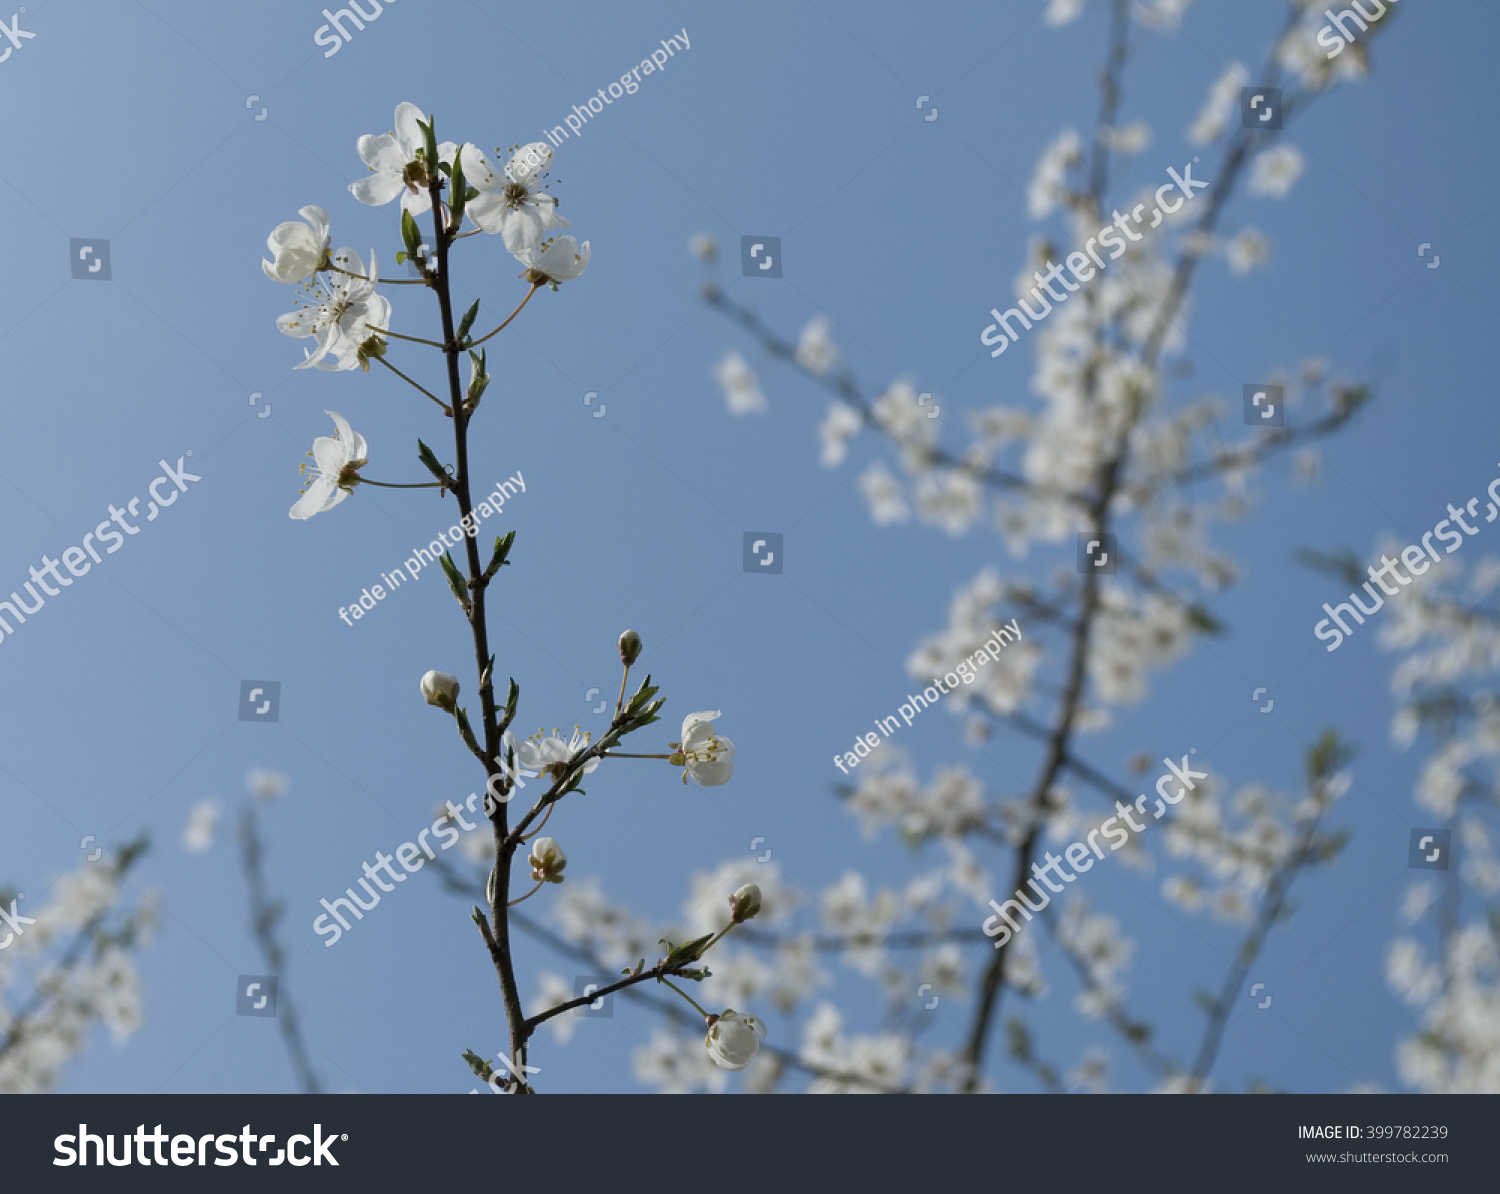 Sakura White Flowers Tree Early Spring Stock Photo 100 Legal